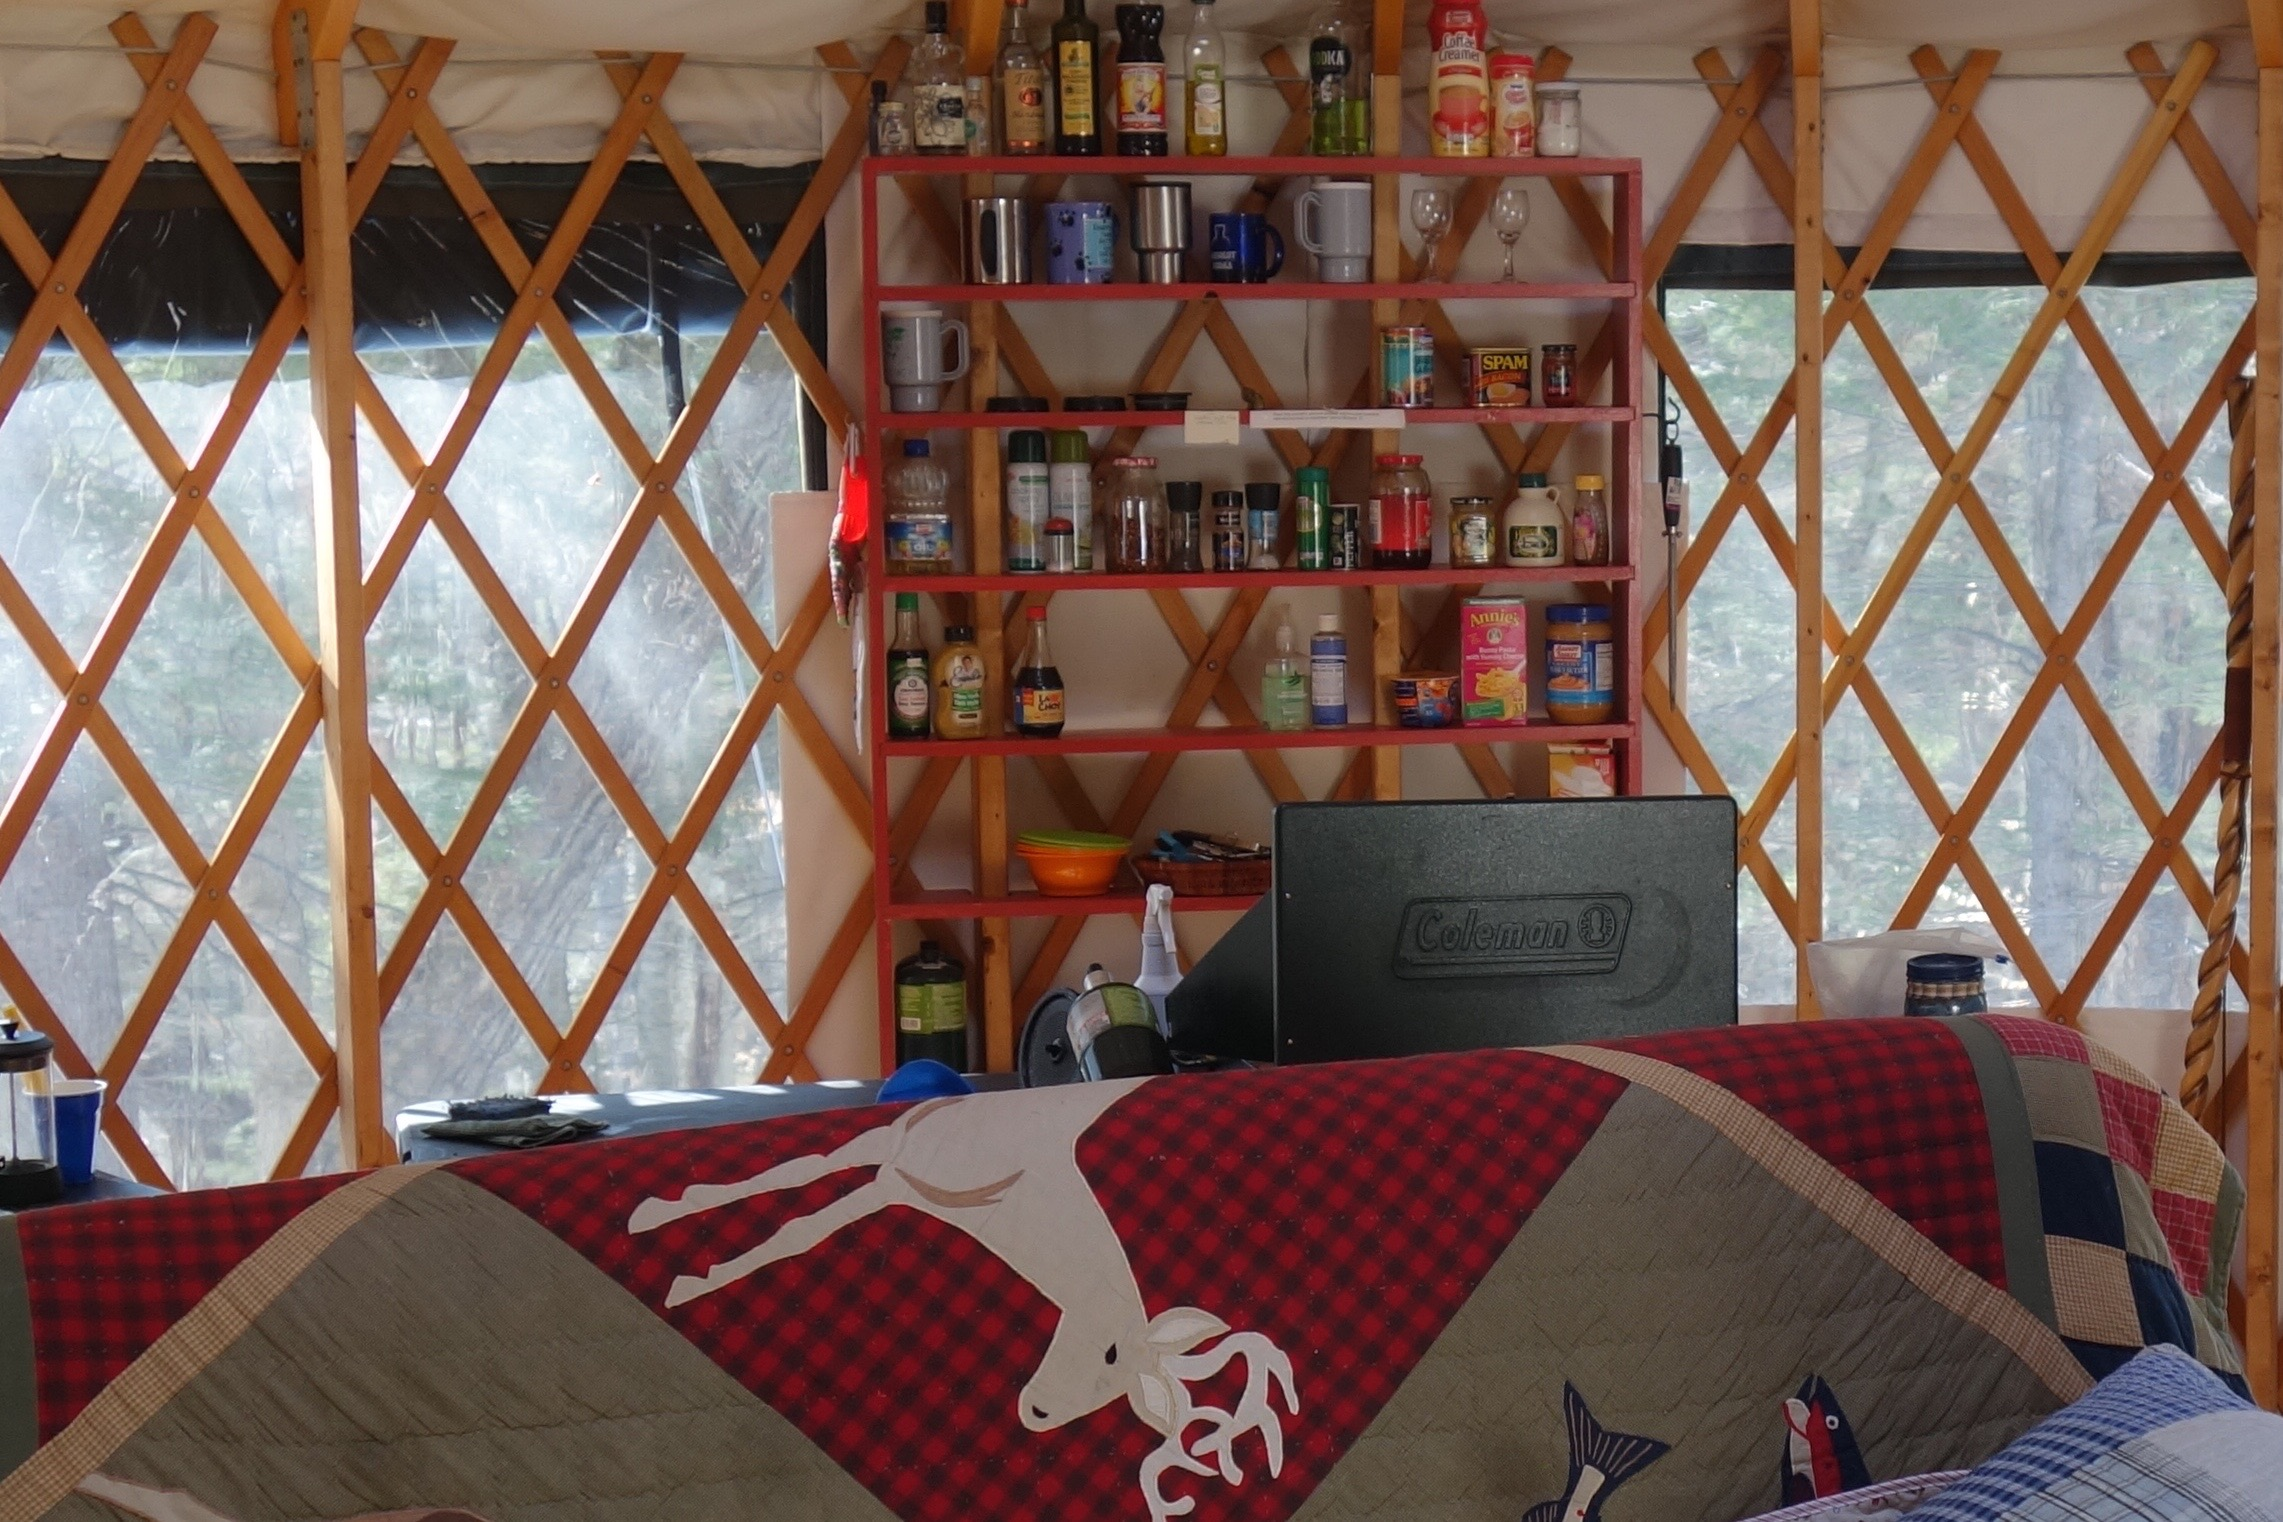 Click image for larger version  Name:Yurt shelving or mice playhouse.jpg Views:5 Size:883.4 KB ID:998